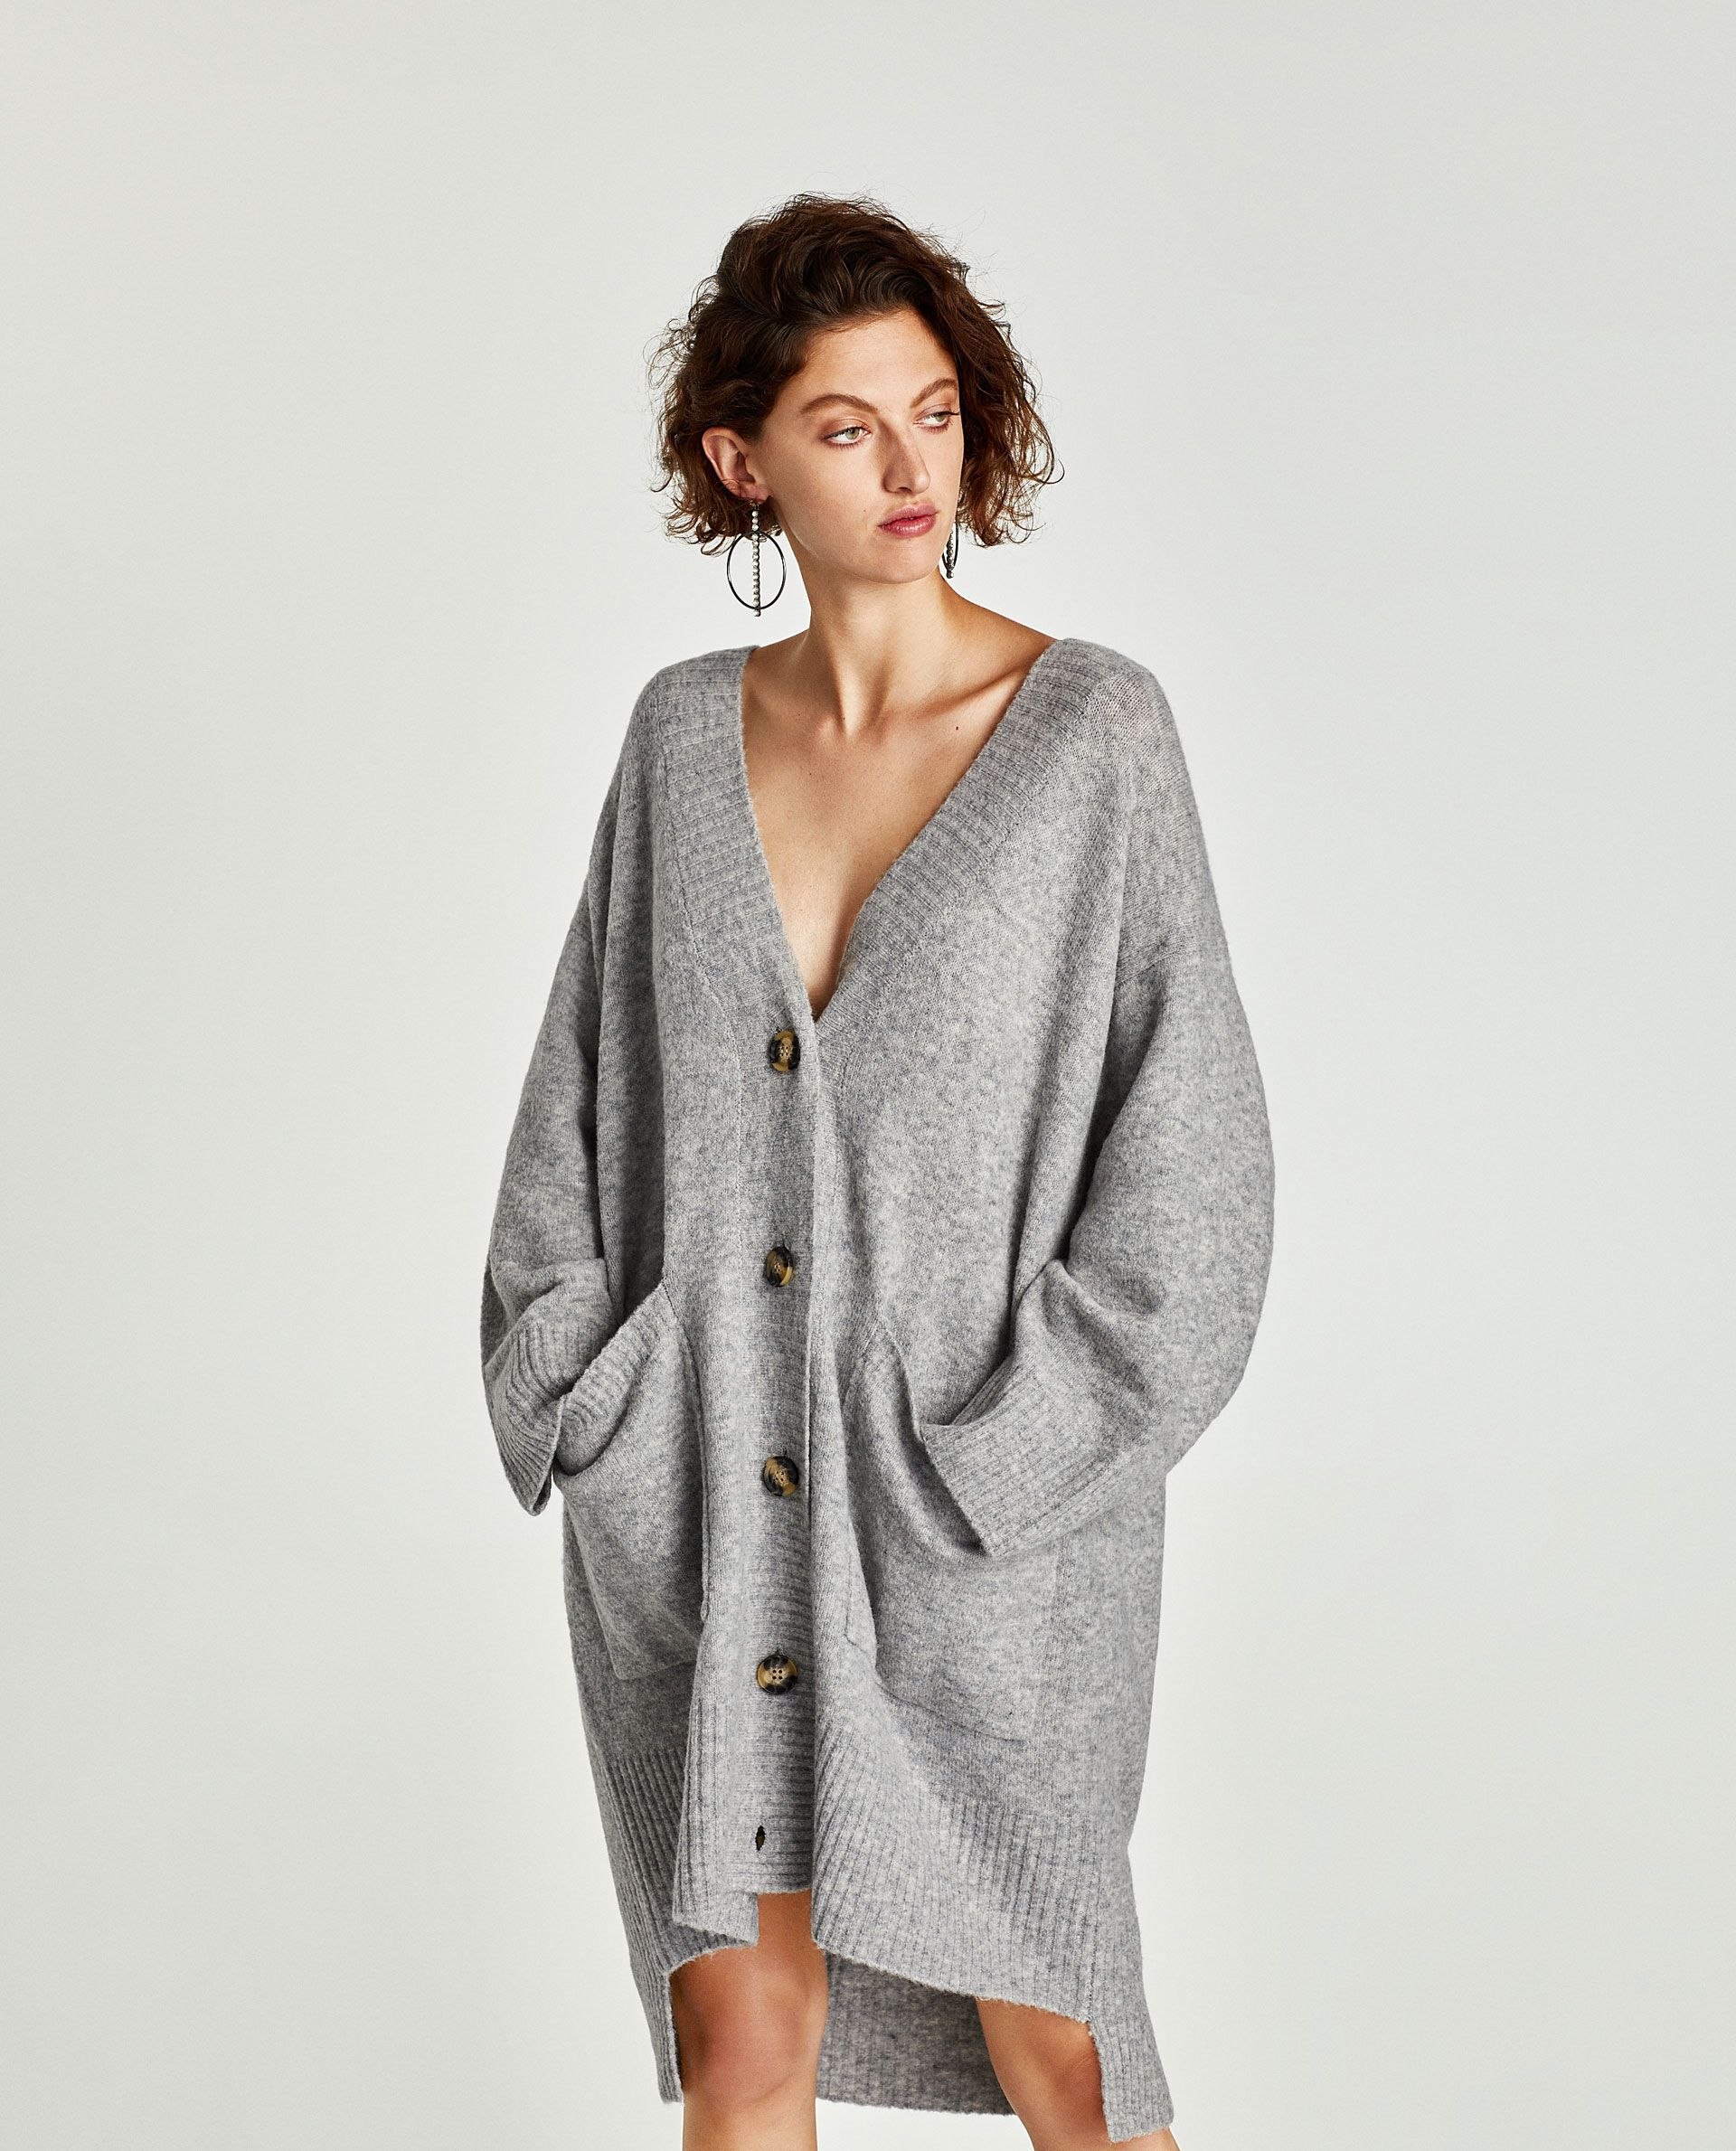 Zara AW17 grey oversized longline cardigan in wool blend 49 ...